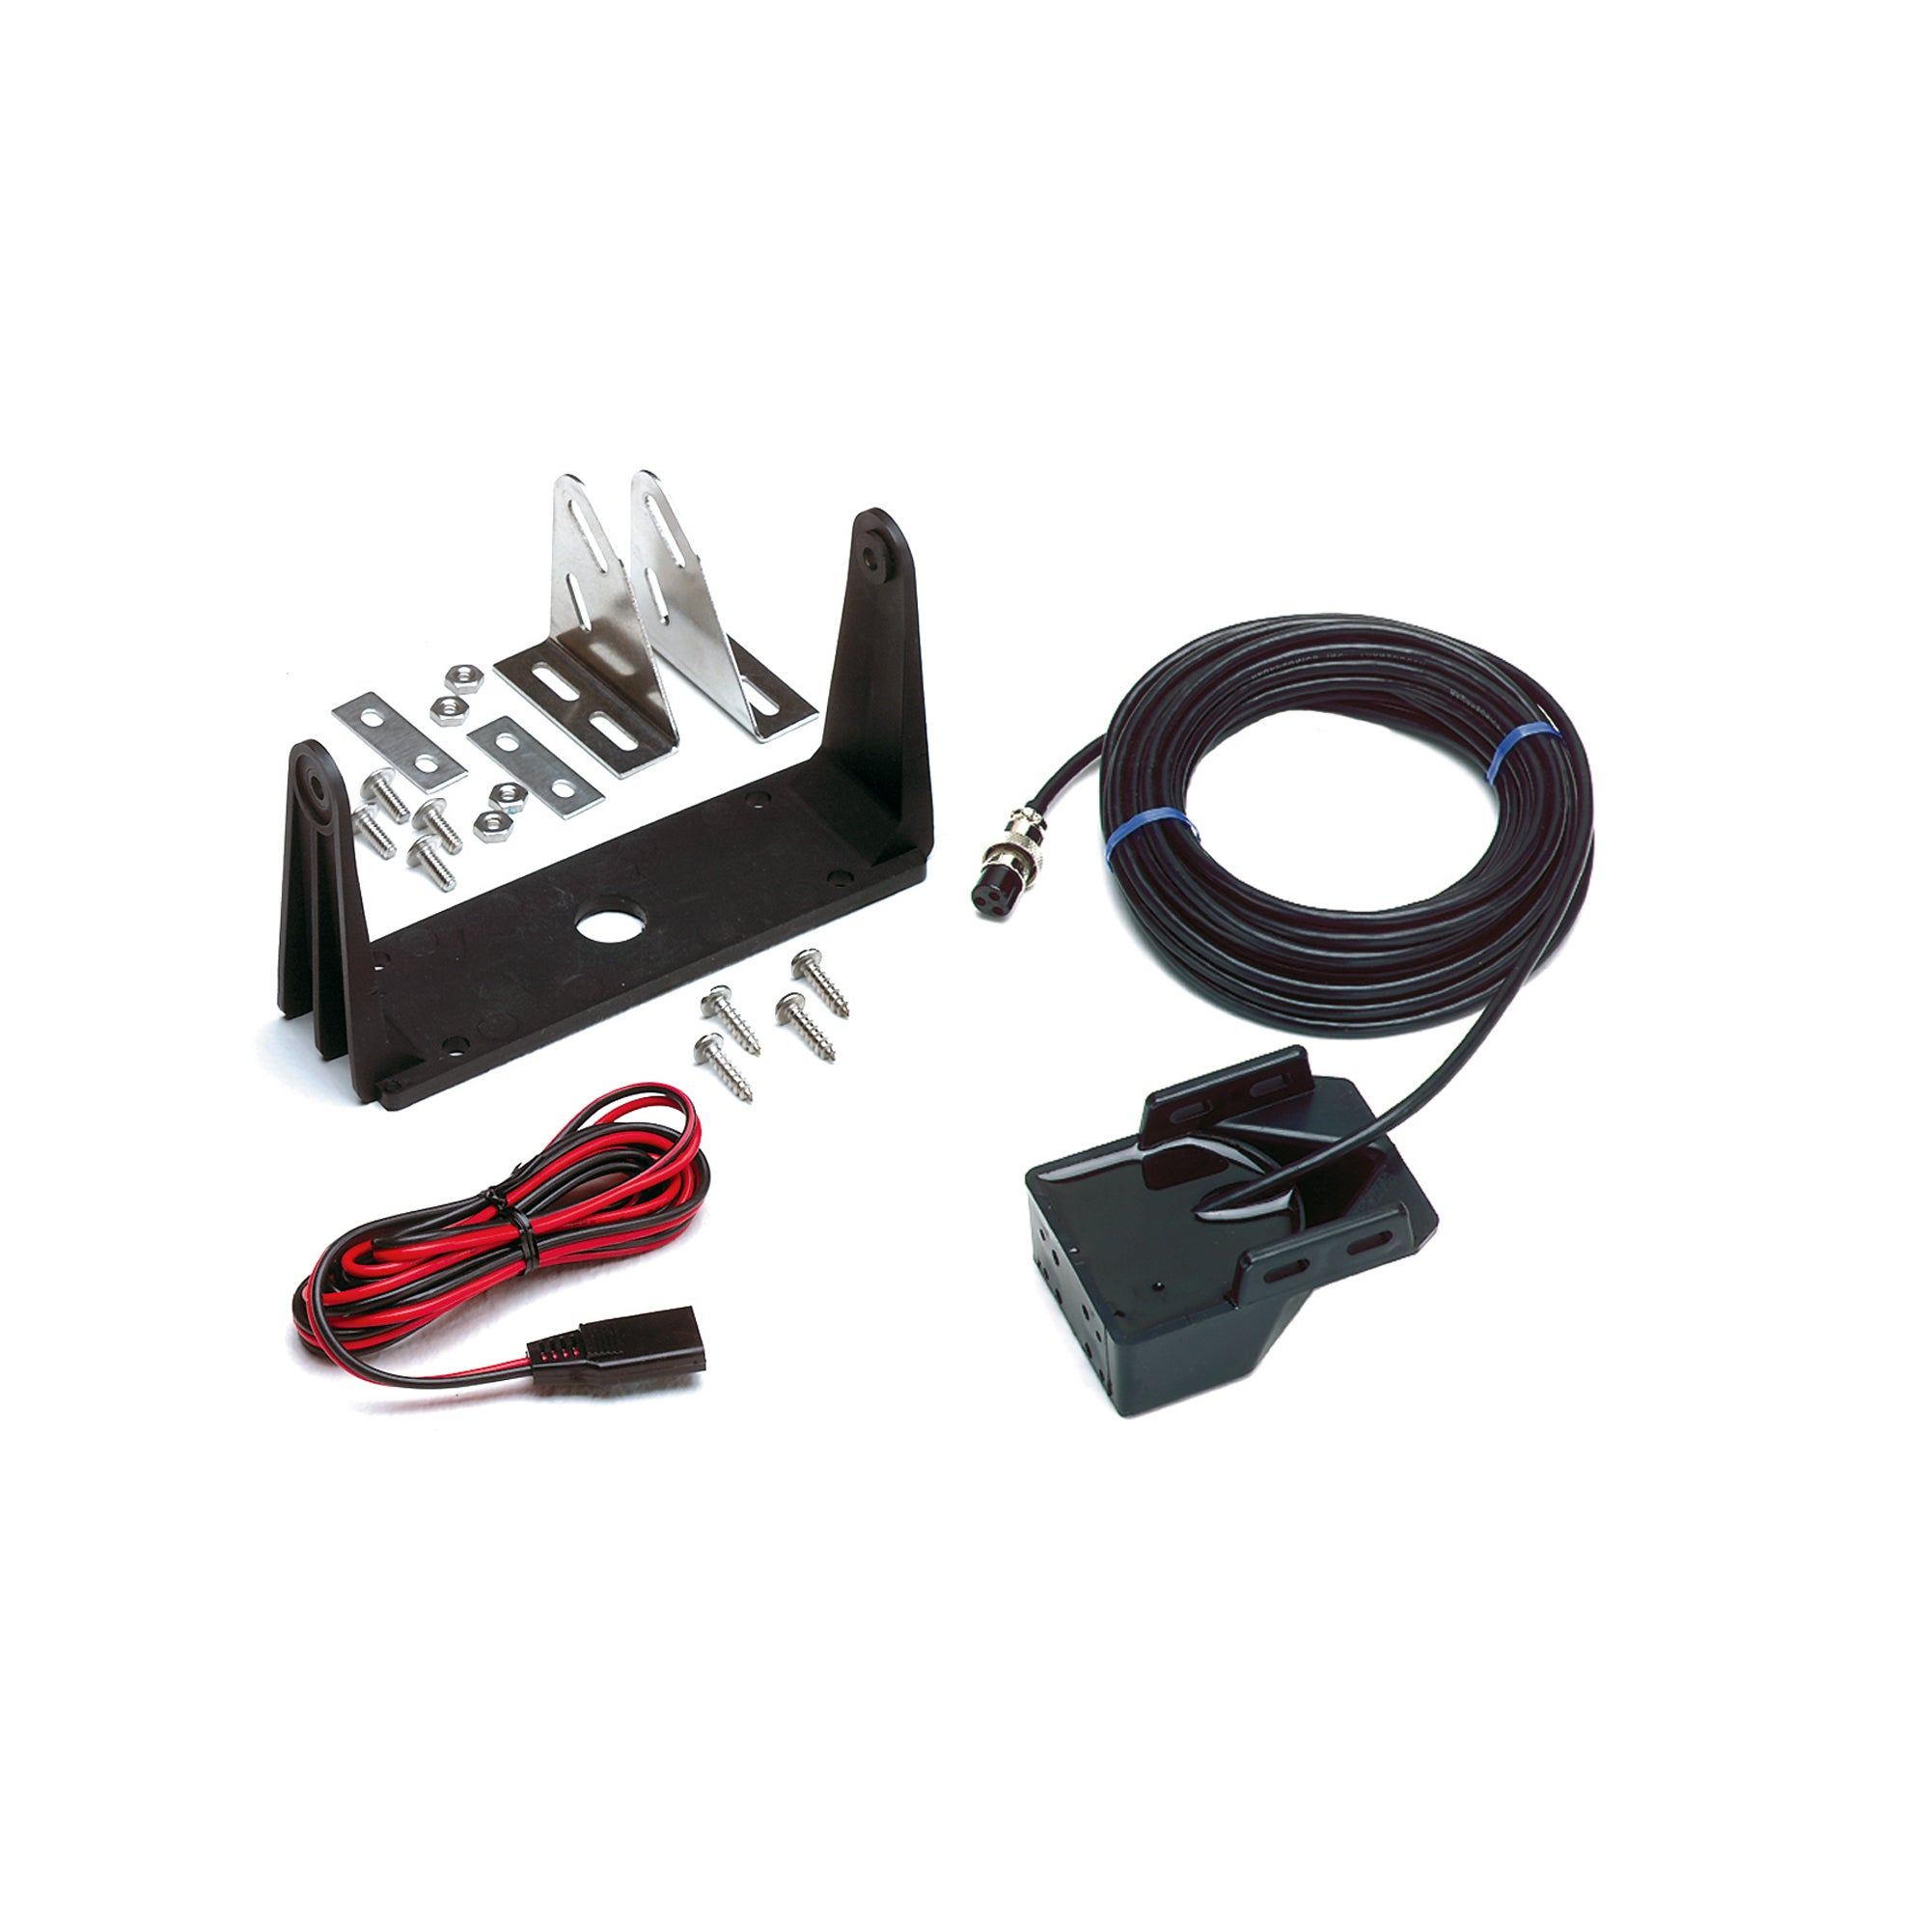 Vexilar Hi Power and Hi Speed TS Kit for FL 12 and 20 Fla...